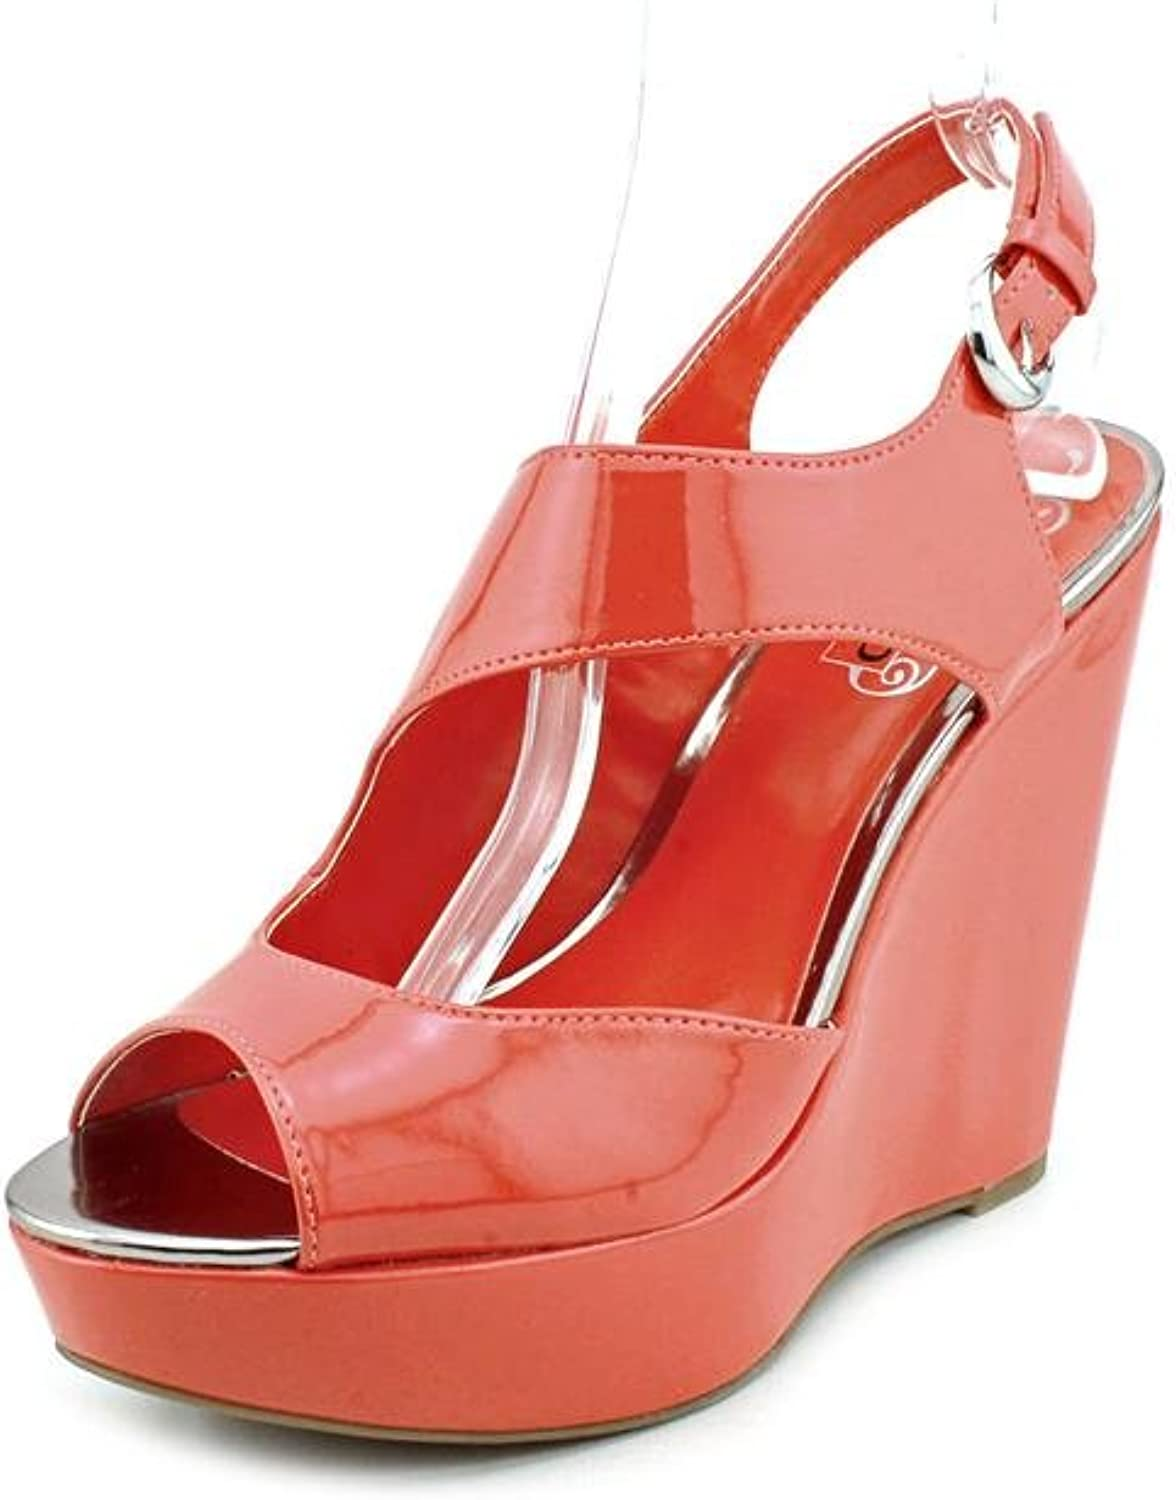 Unlisted Women's Bend-Able Sandal 7 B(M) US Coral-Patent